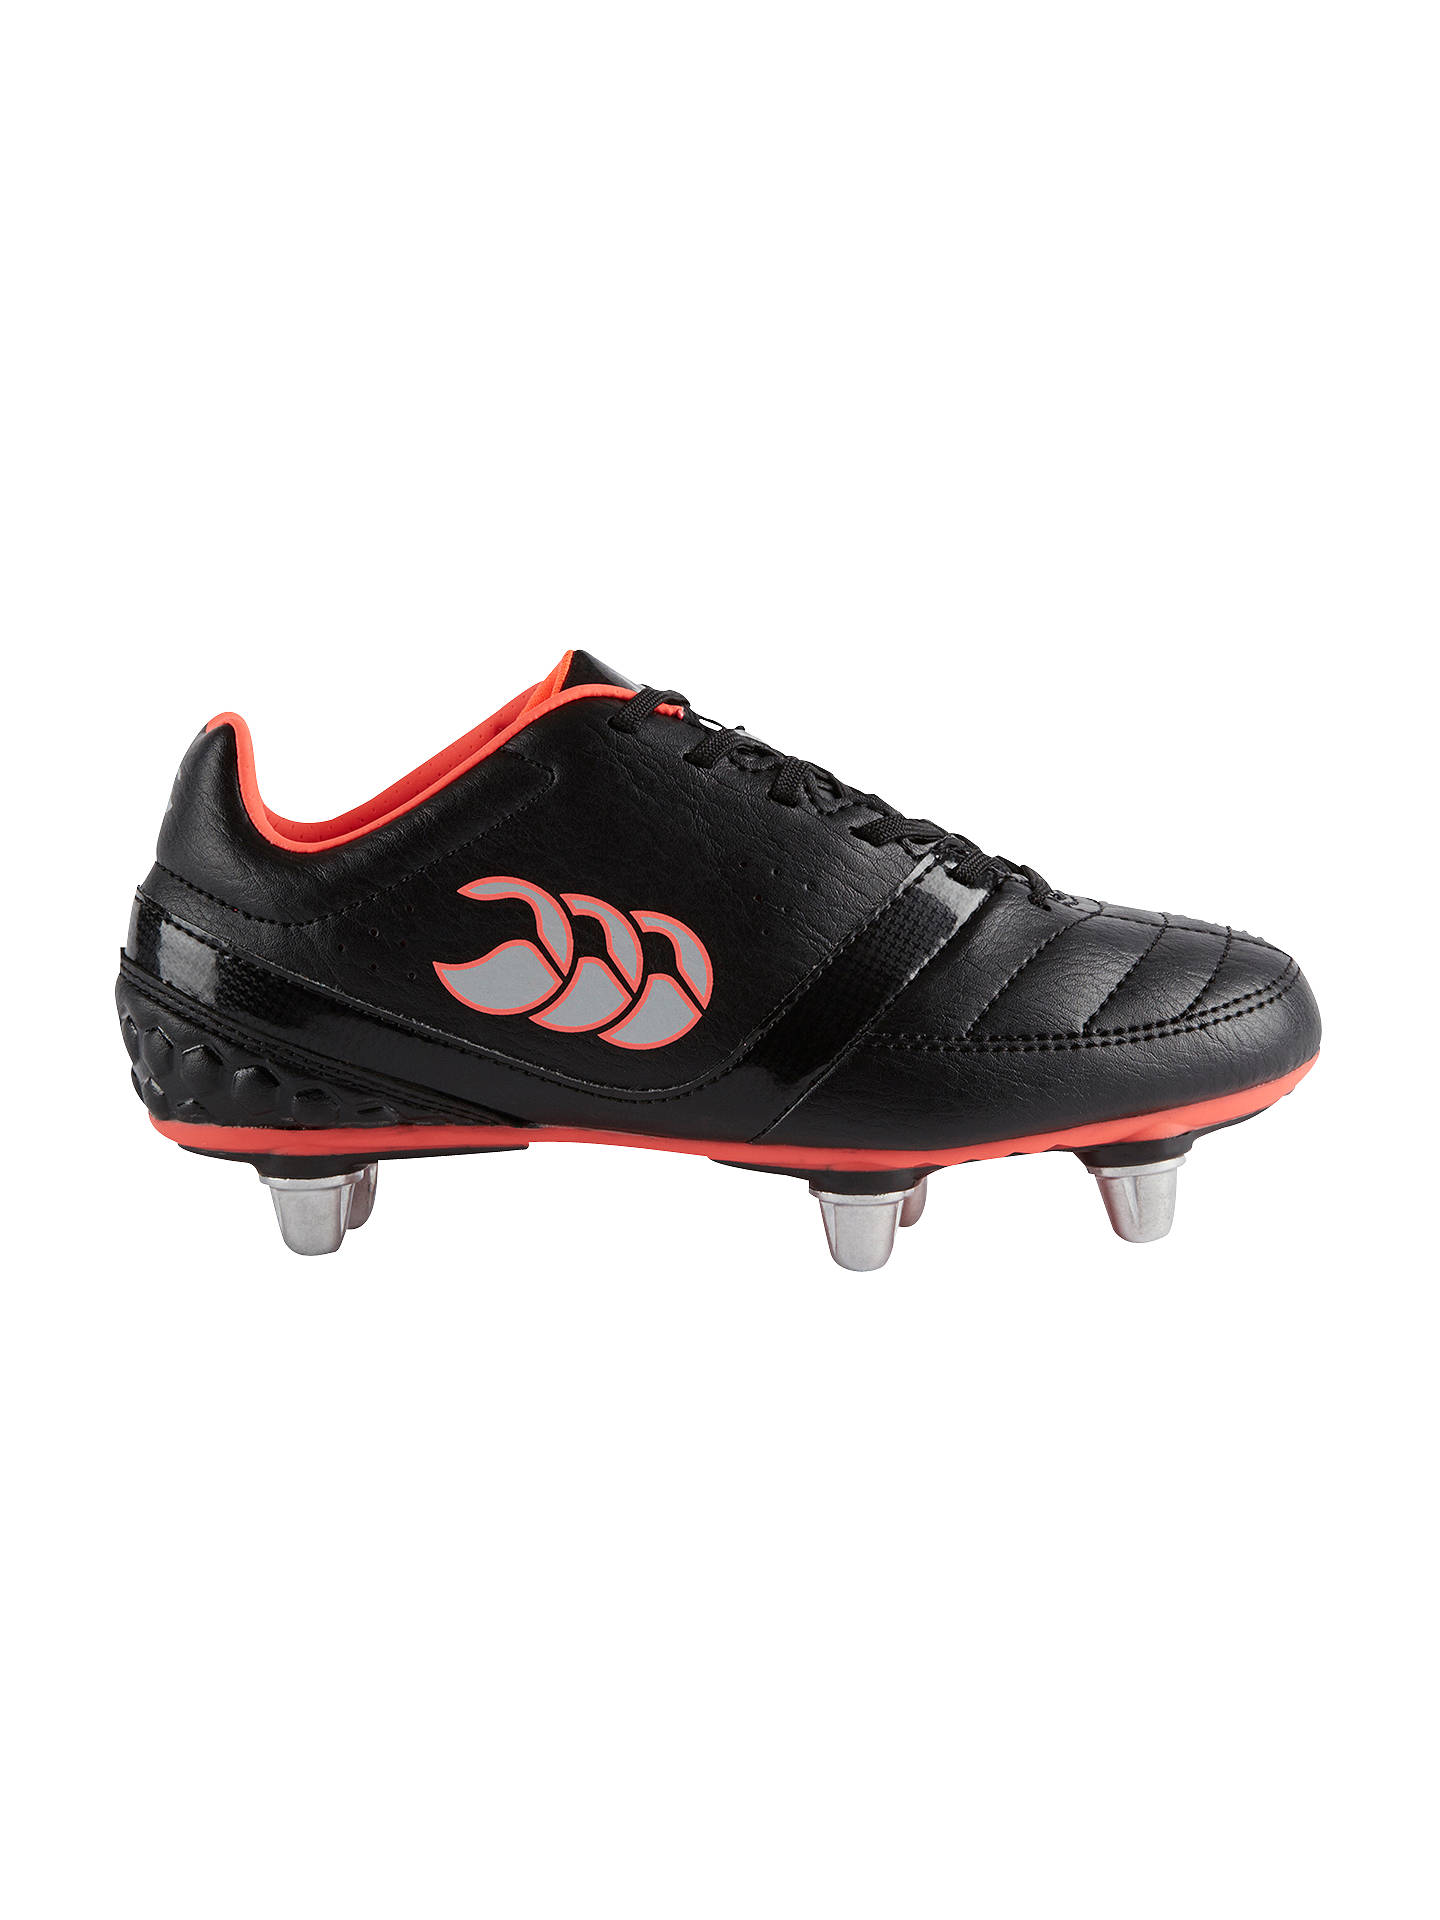 Touch Rugby Boots Clearance | Players Outlet NZ